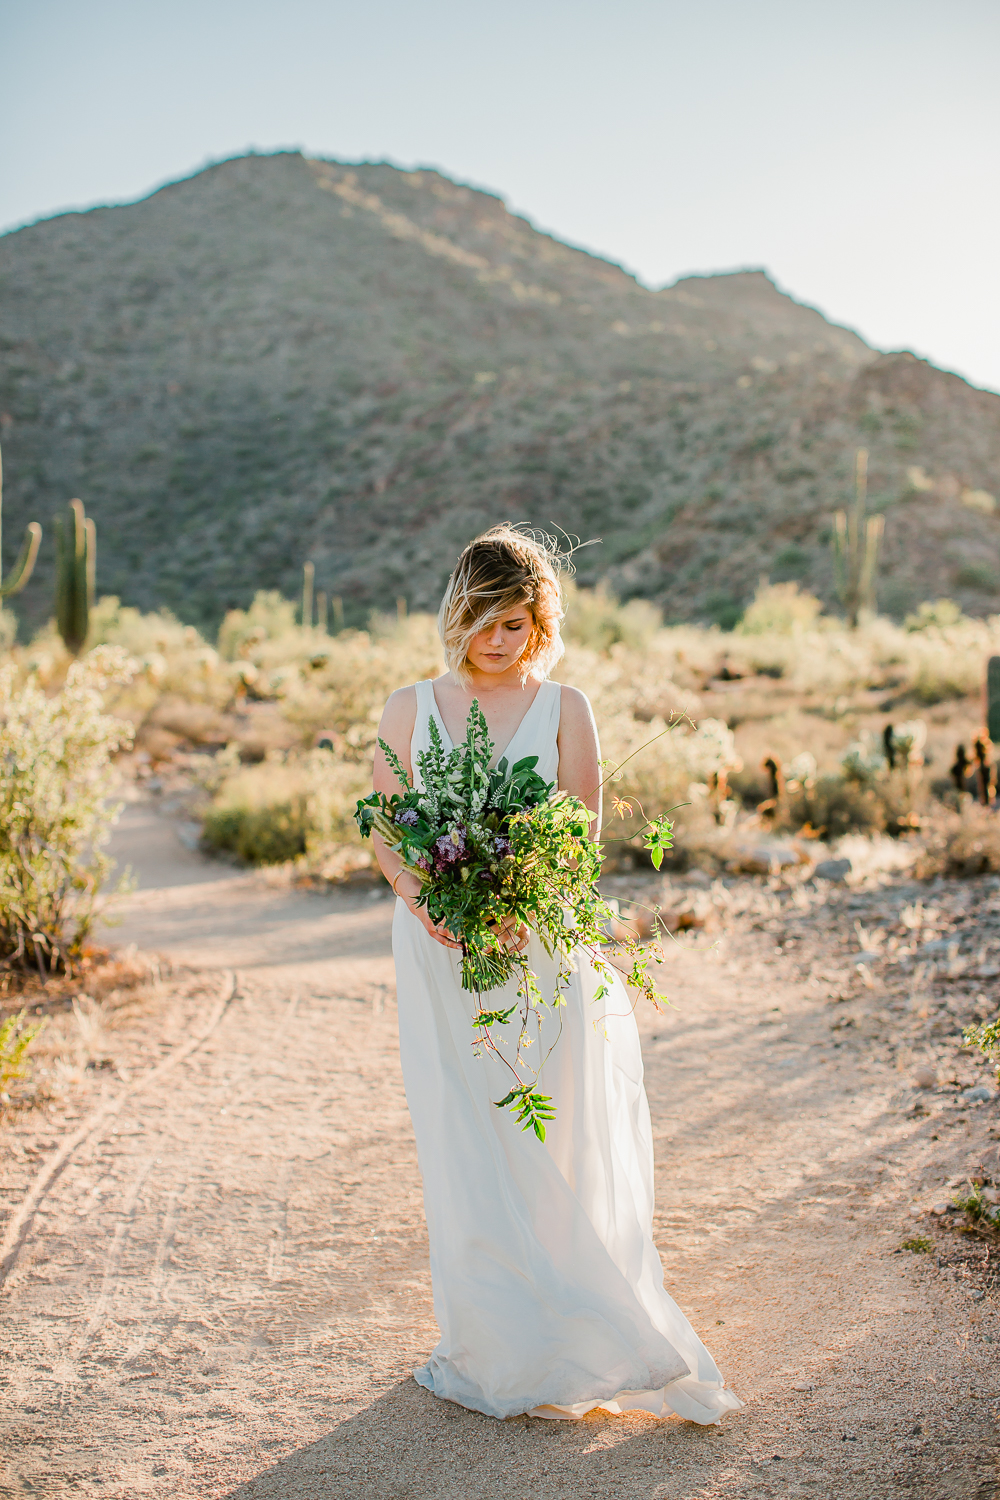 Arizona-Desert-Elopement-Emily-Kirke-Photography-7.jpg